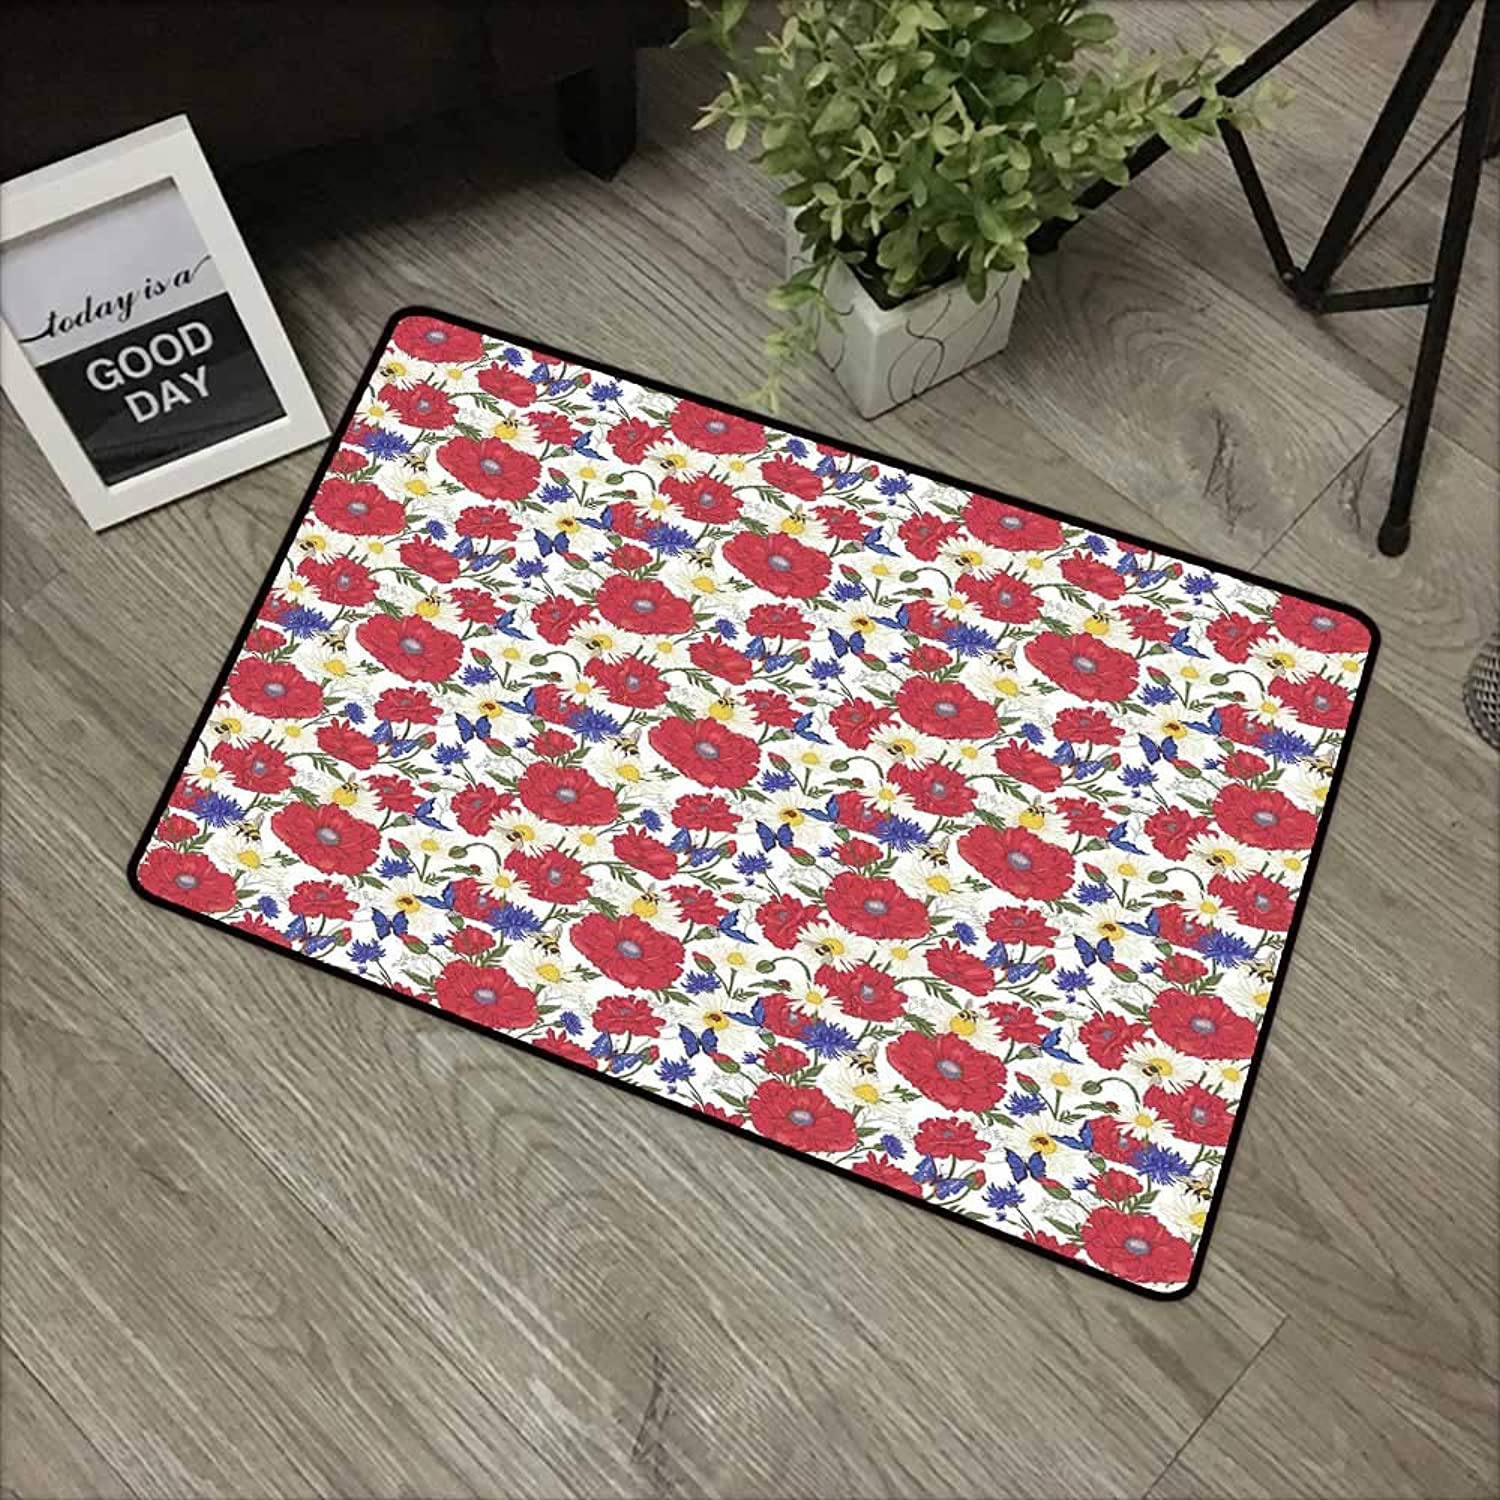 Bathroom Door mat W35 x L59 INCH Floral,Blooming Red Poppies Chamomile Ladybird and Daisies Bumblebee Bees and Butterflies,Multicolor Non-Slip Door Mat Carpet